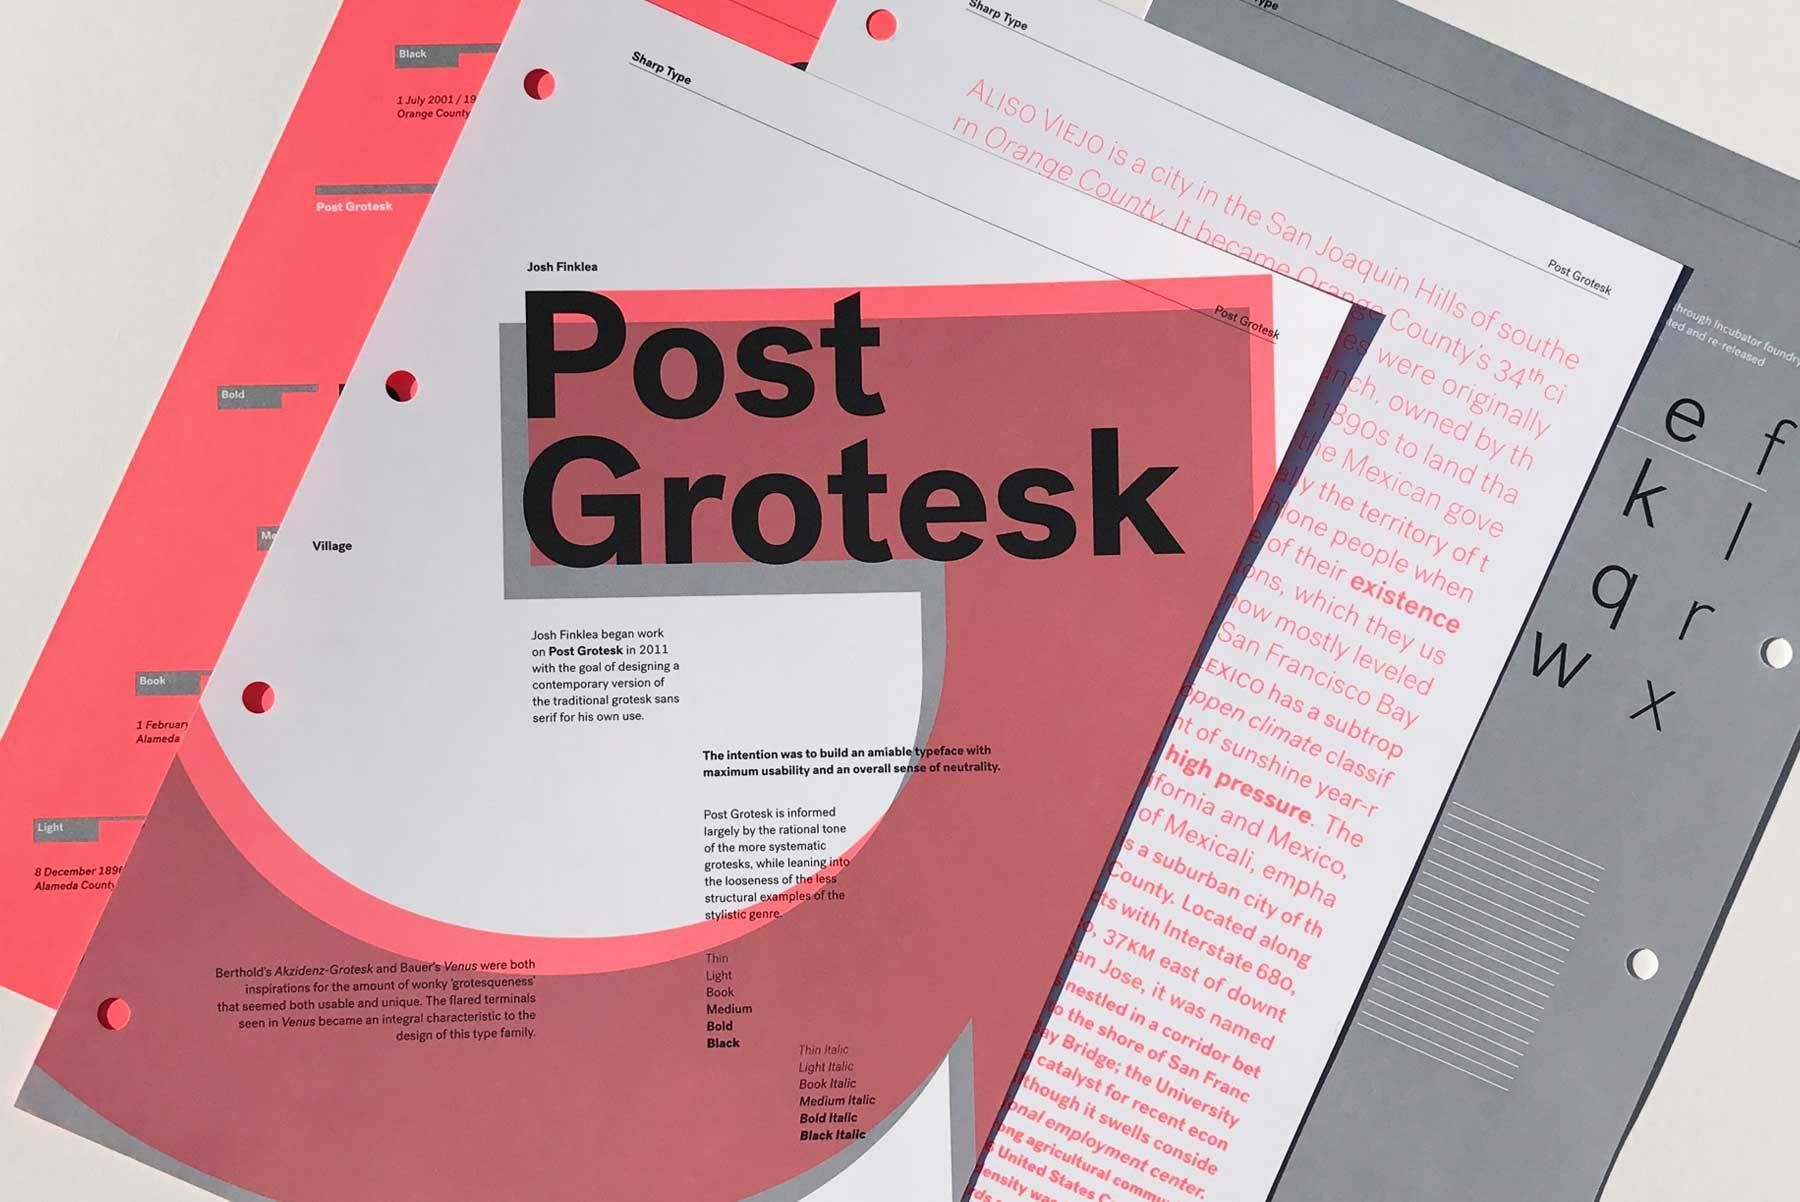 Post Grotesk expands to include two new weights in roman